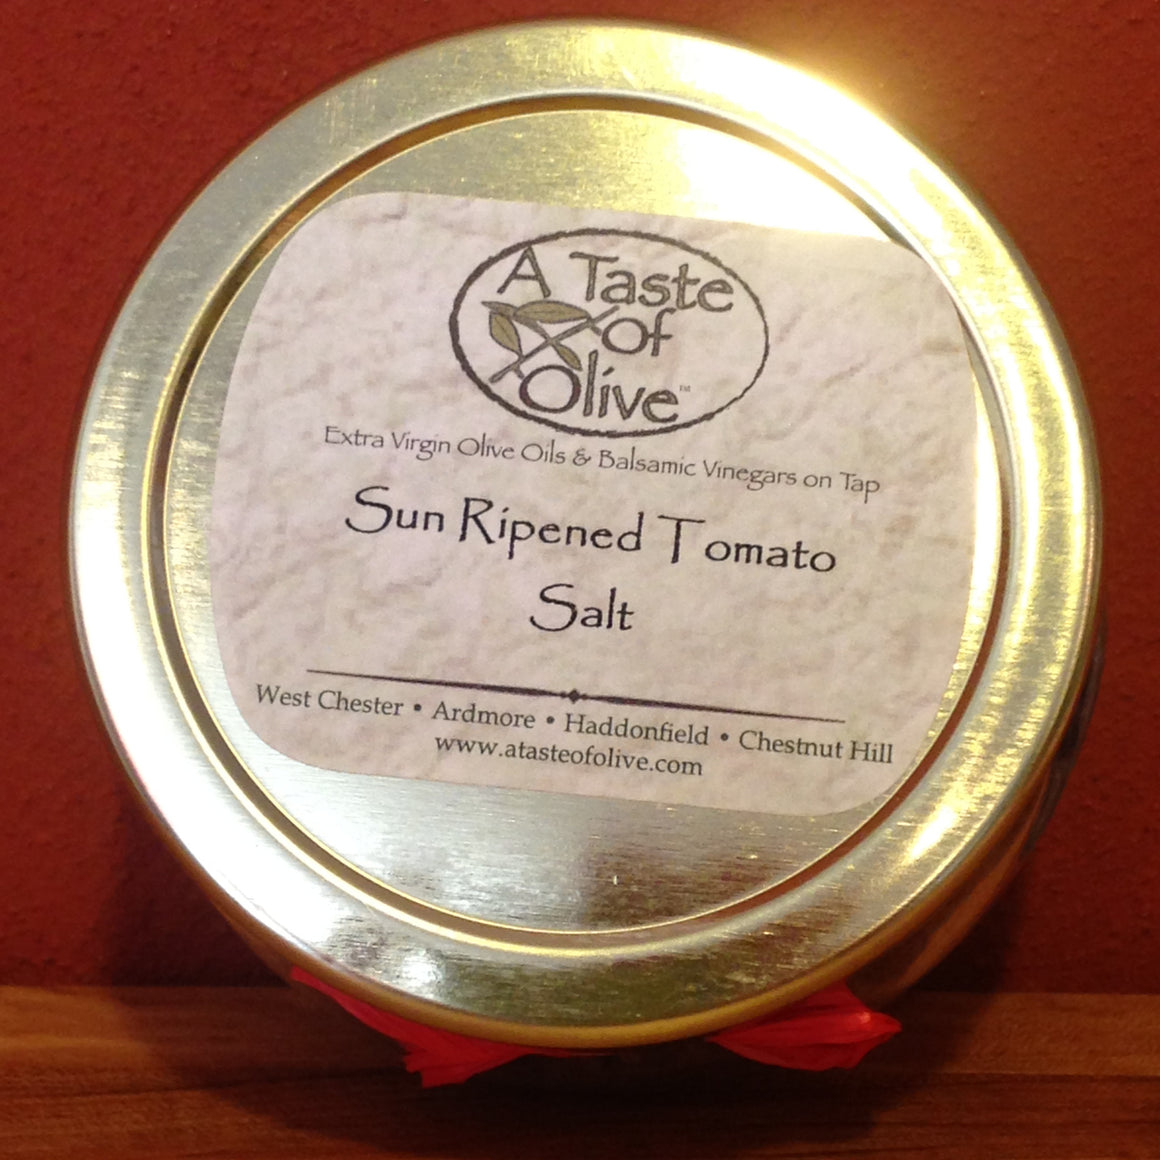 Sun Ripened Tomato Sea Salt - A Taste of Olive